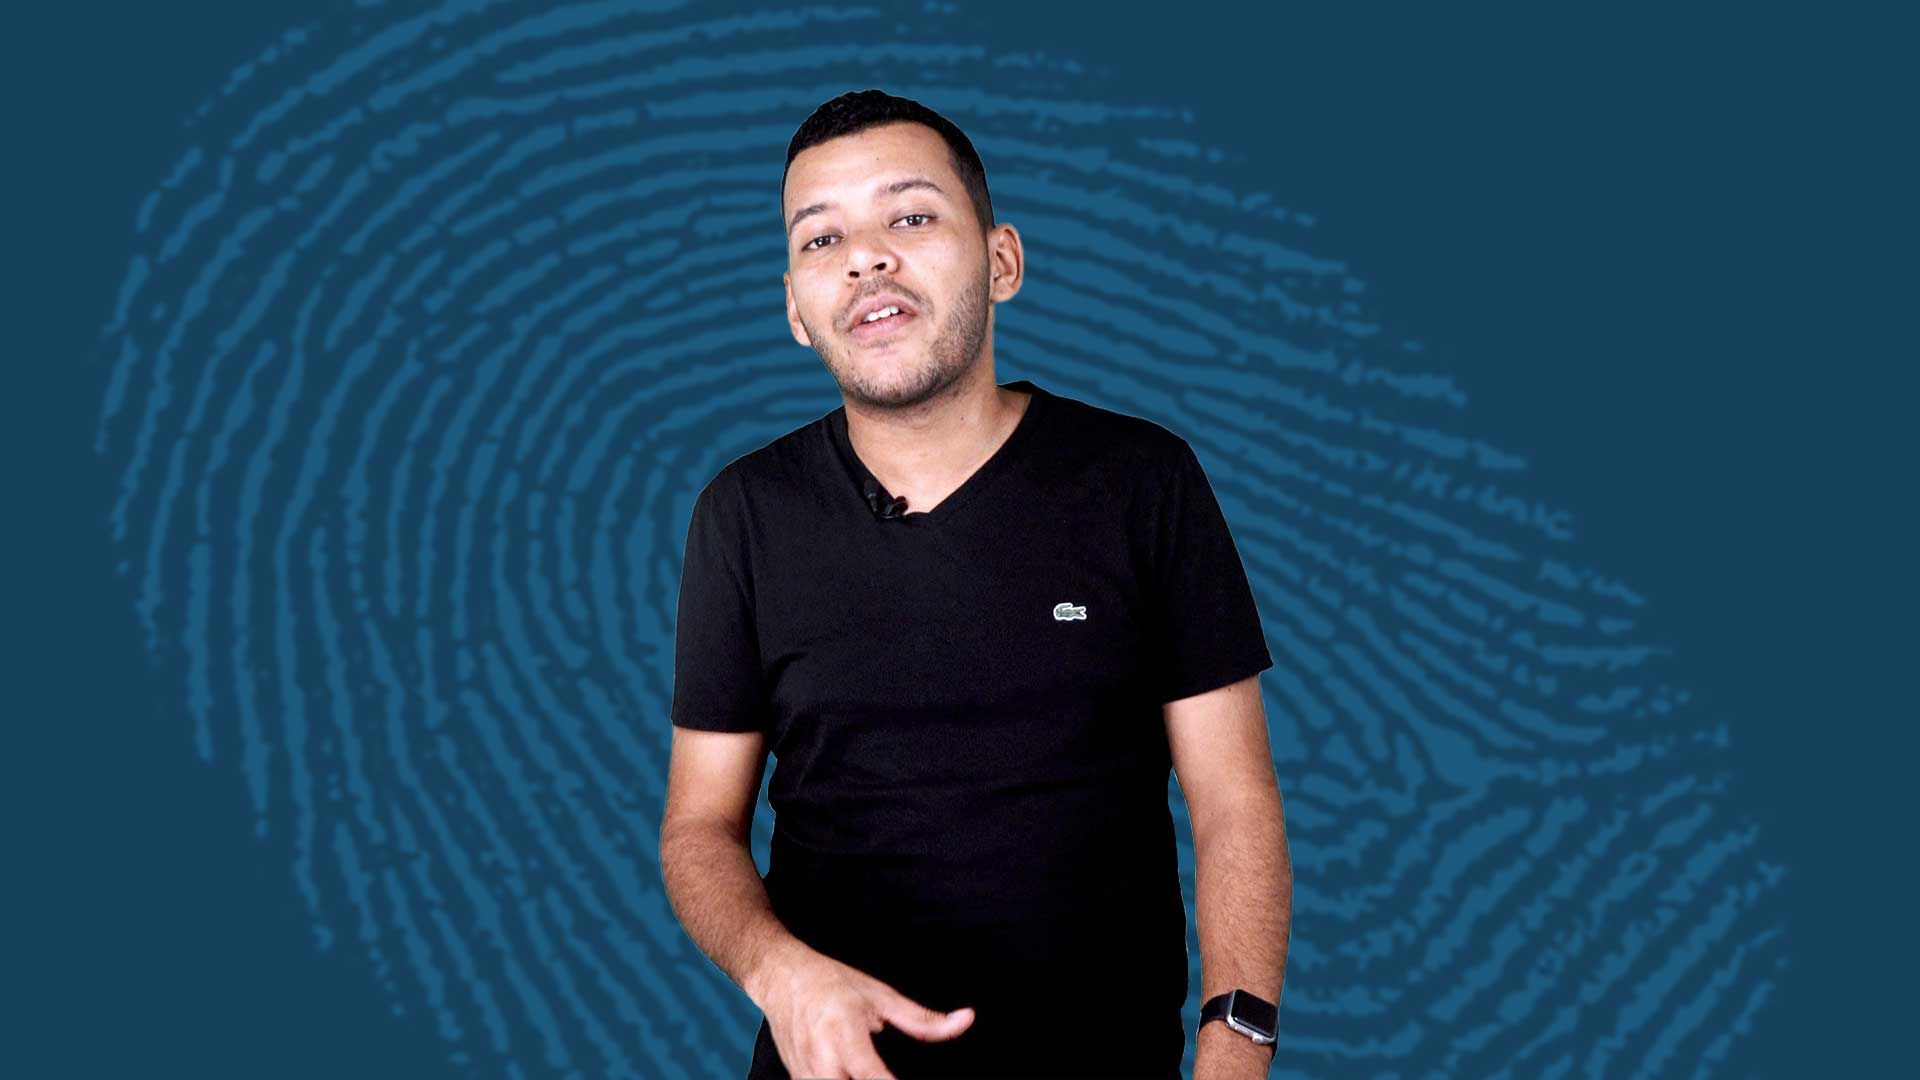 myspace startup forensics - image contains show host caya in front of a blue background